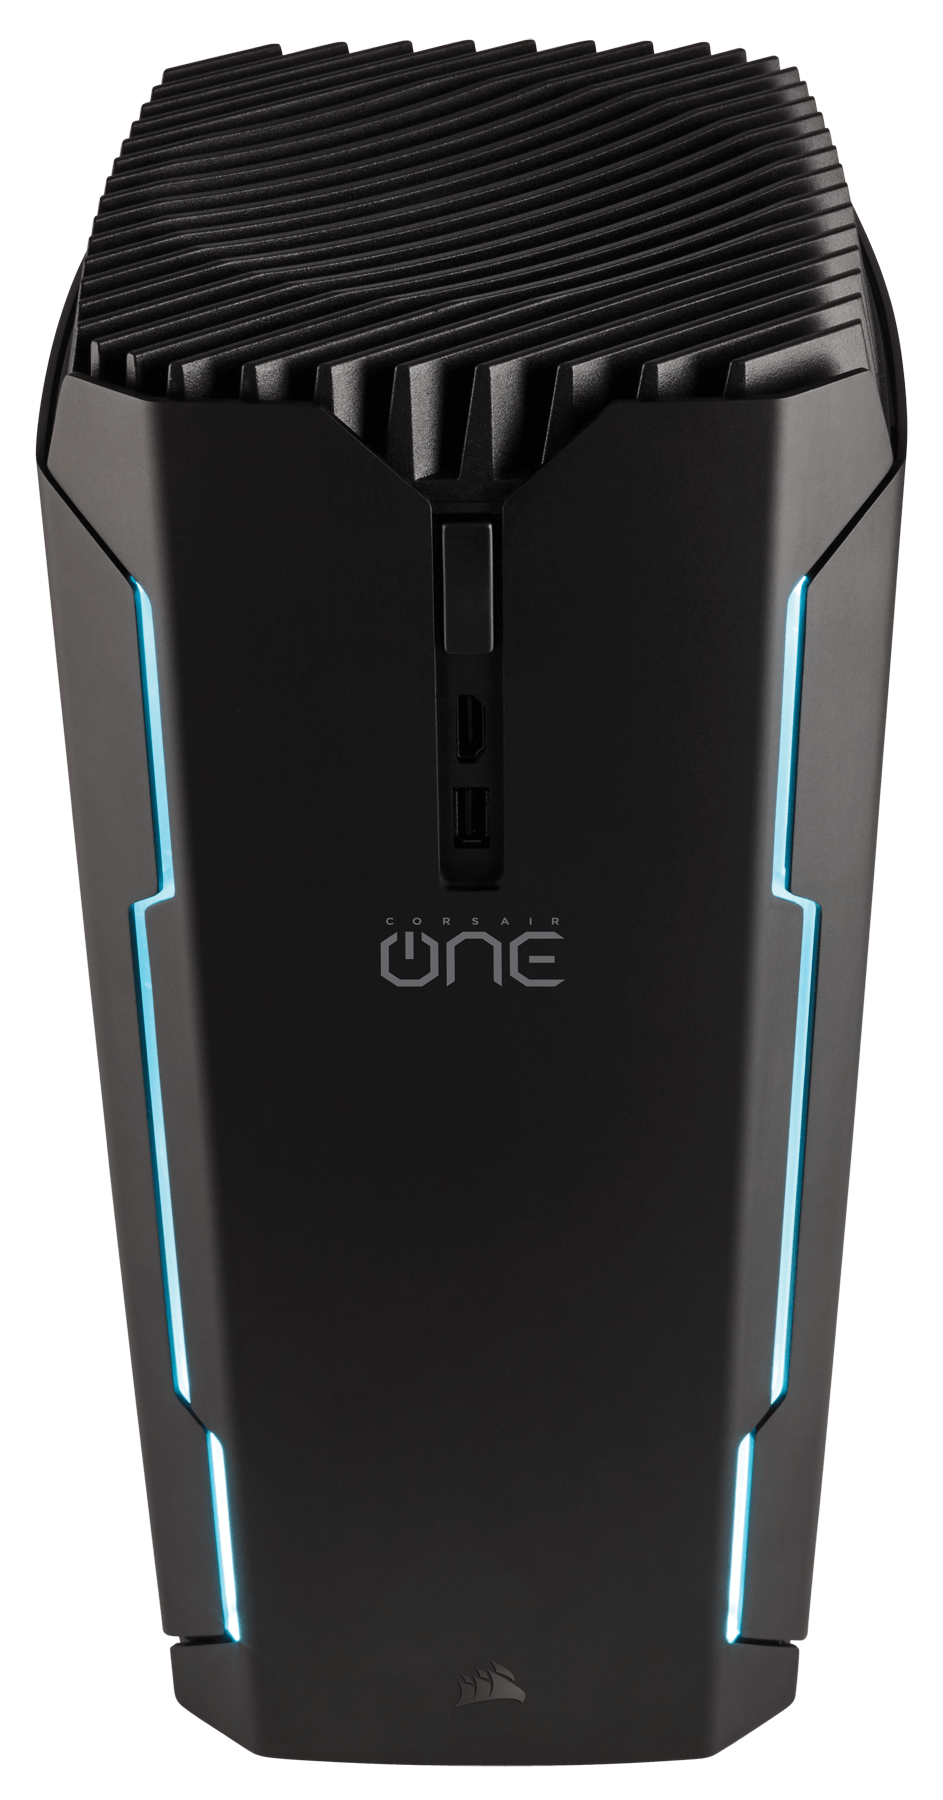 CORSAIR ONE™ PRO Compact Gaming PC — GTX 1080 Ti